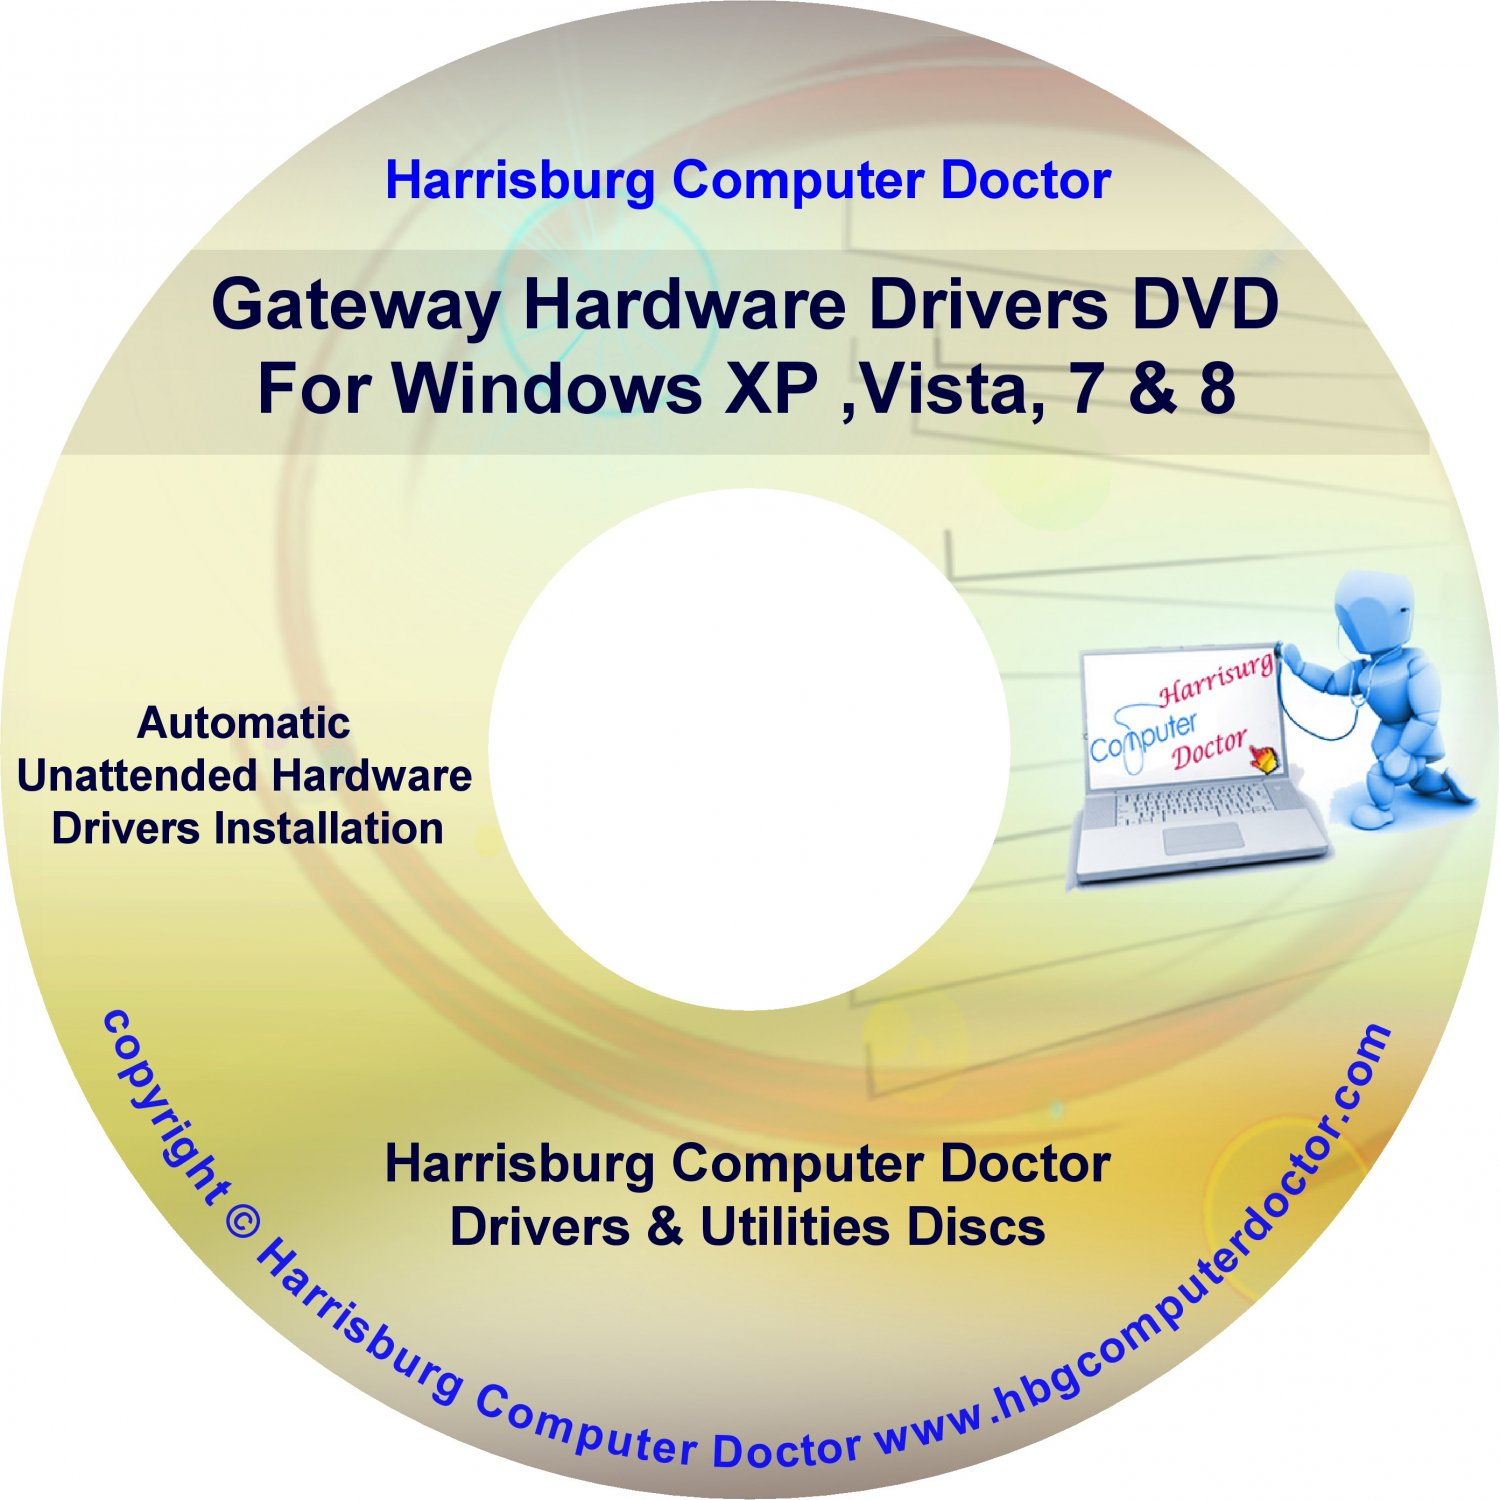 Gateway ZX4951 Drivers DVD For Windows, XP, Vista, 7 & 8